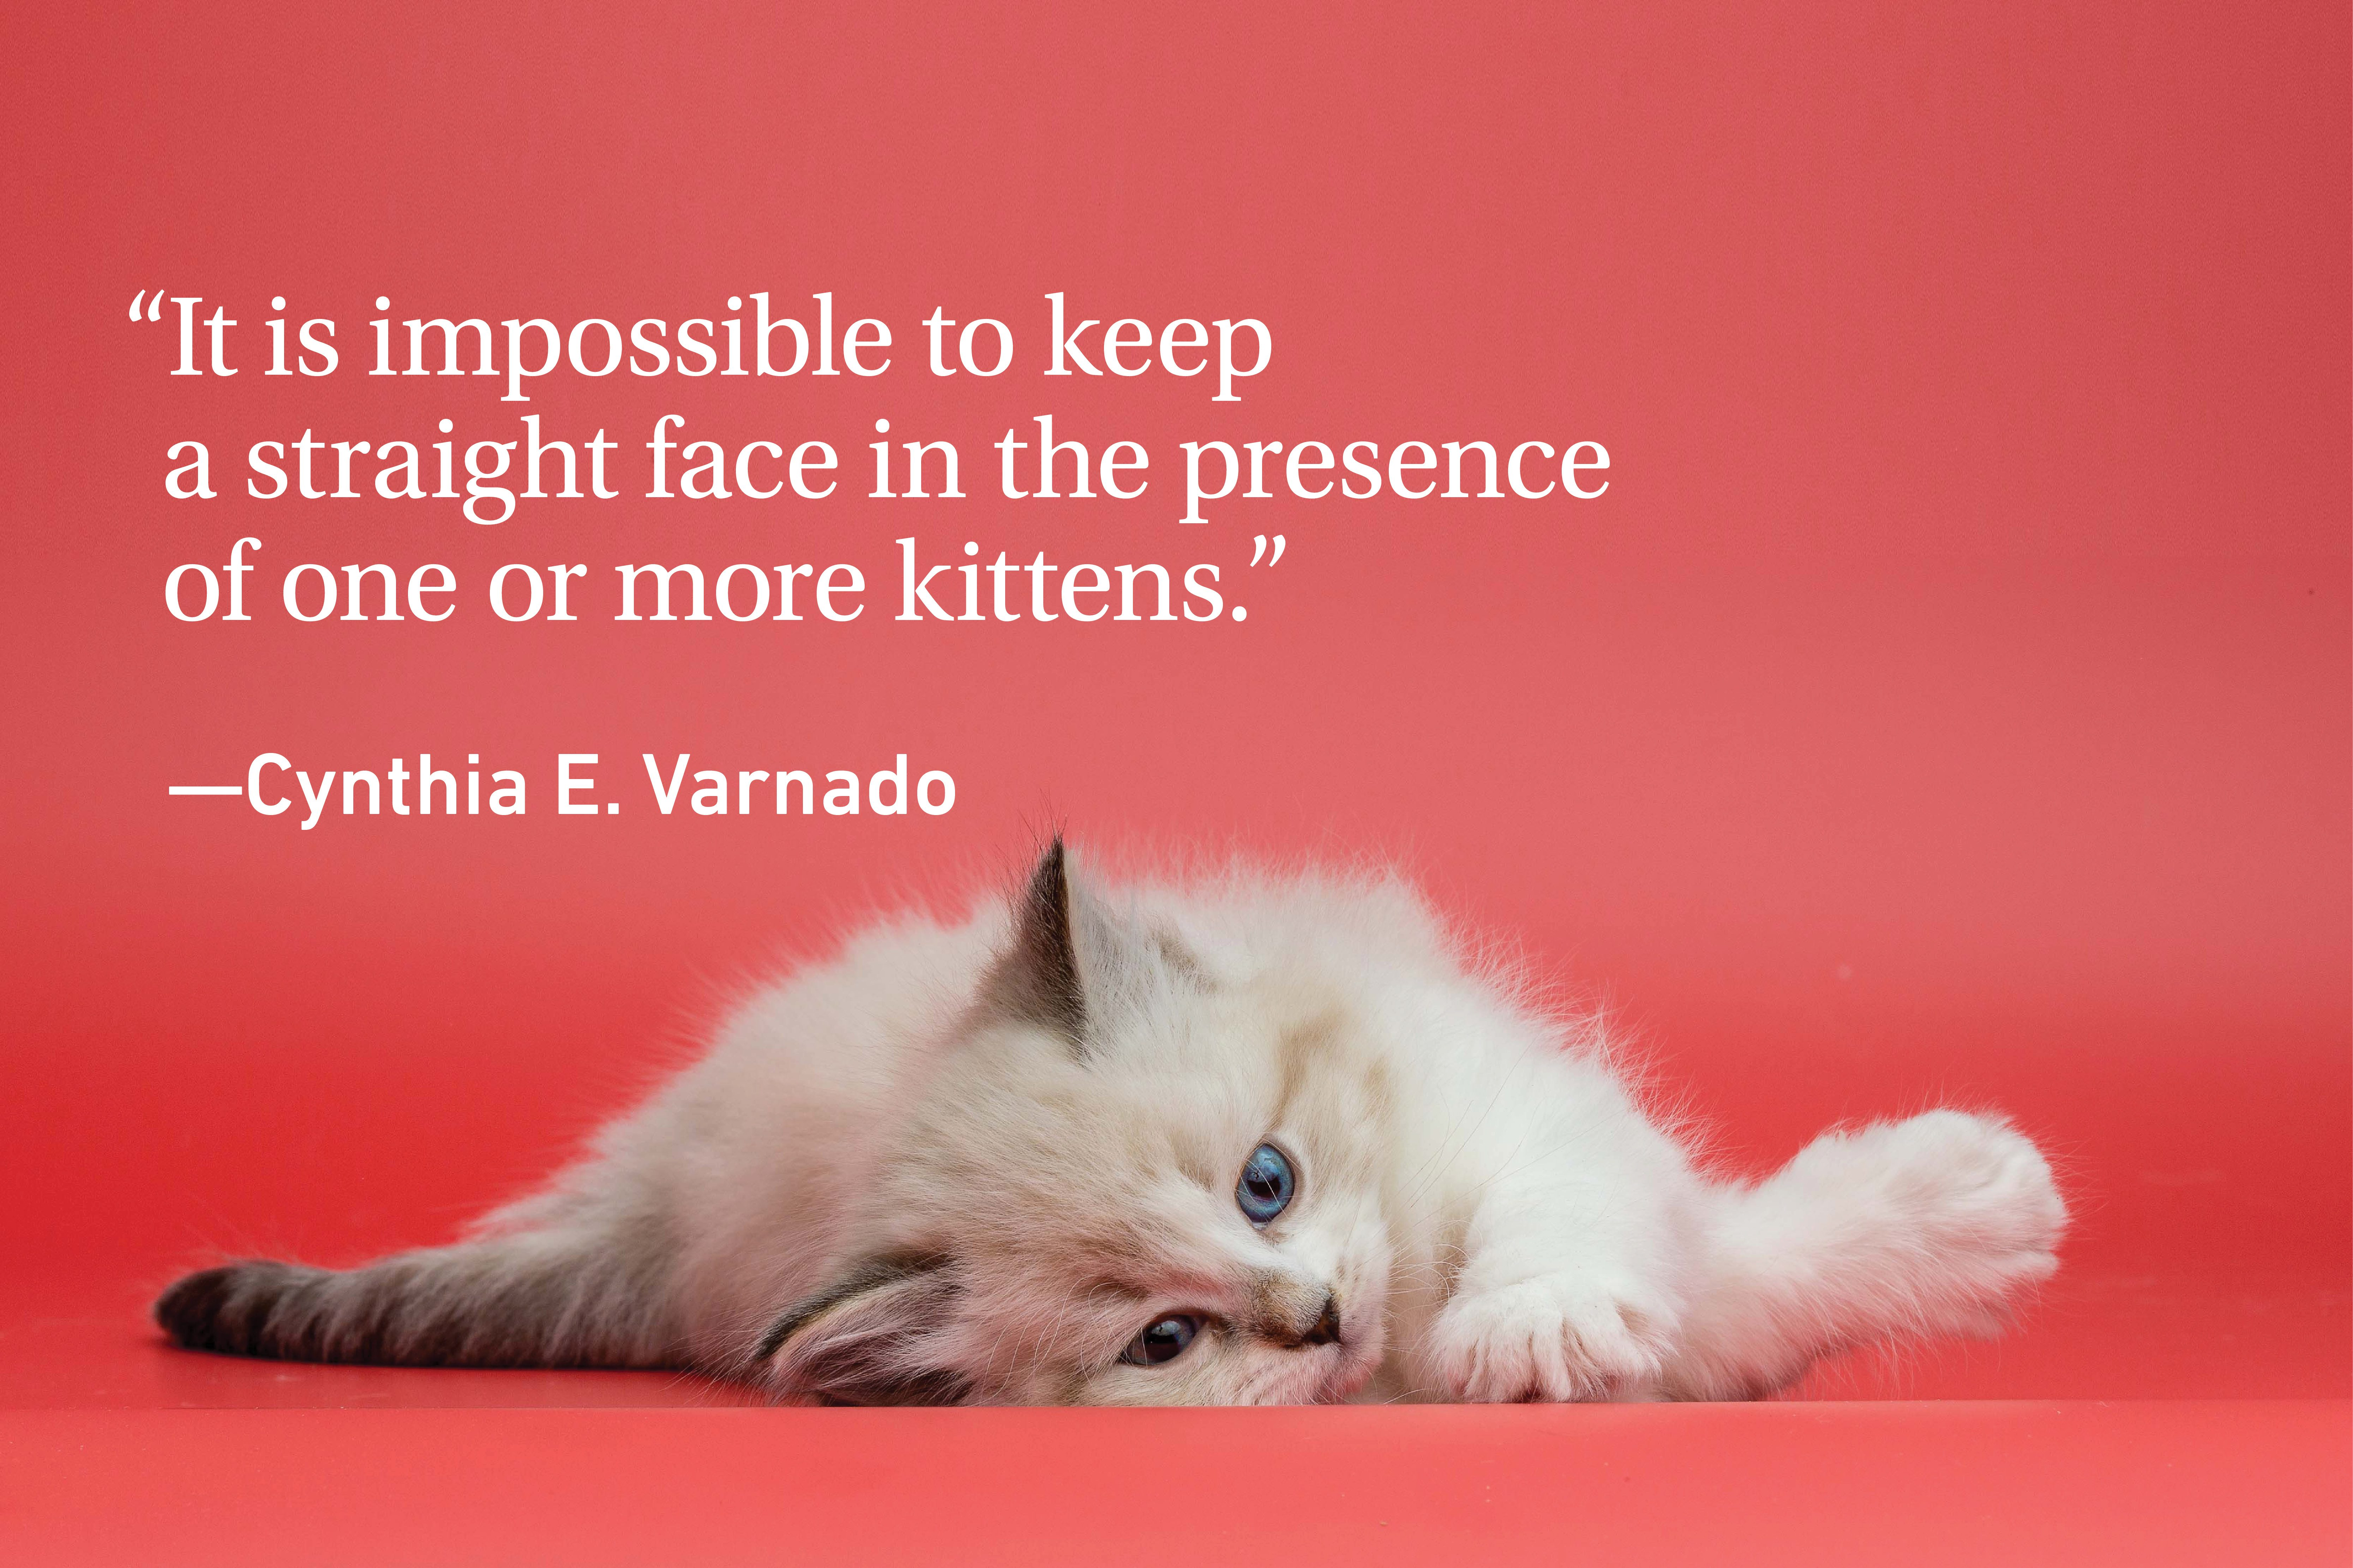 Kitten on a red background with a cat quote